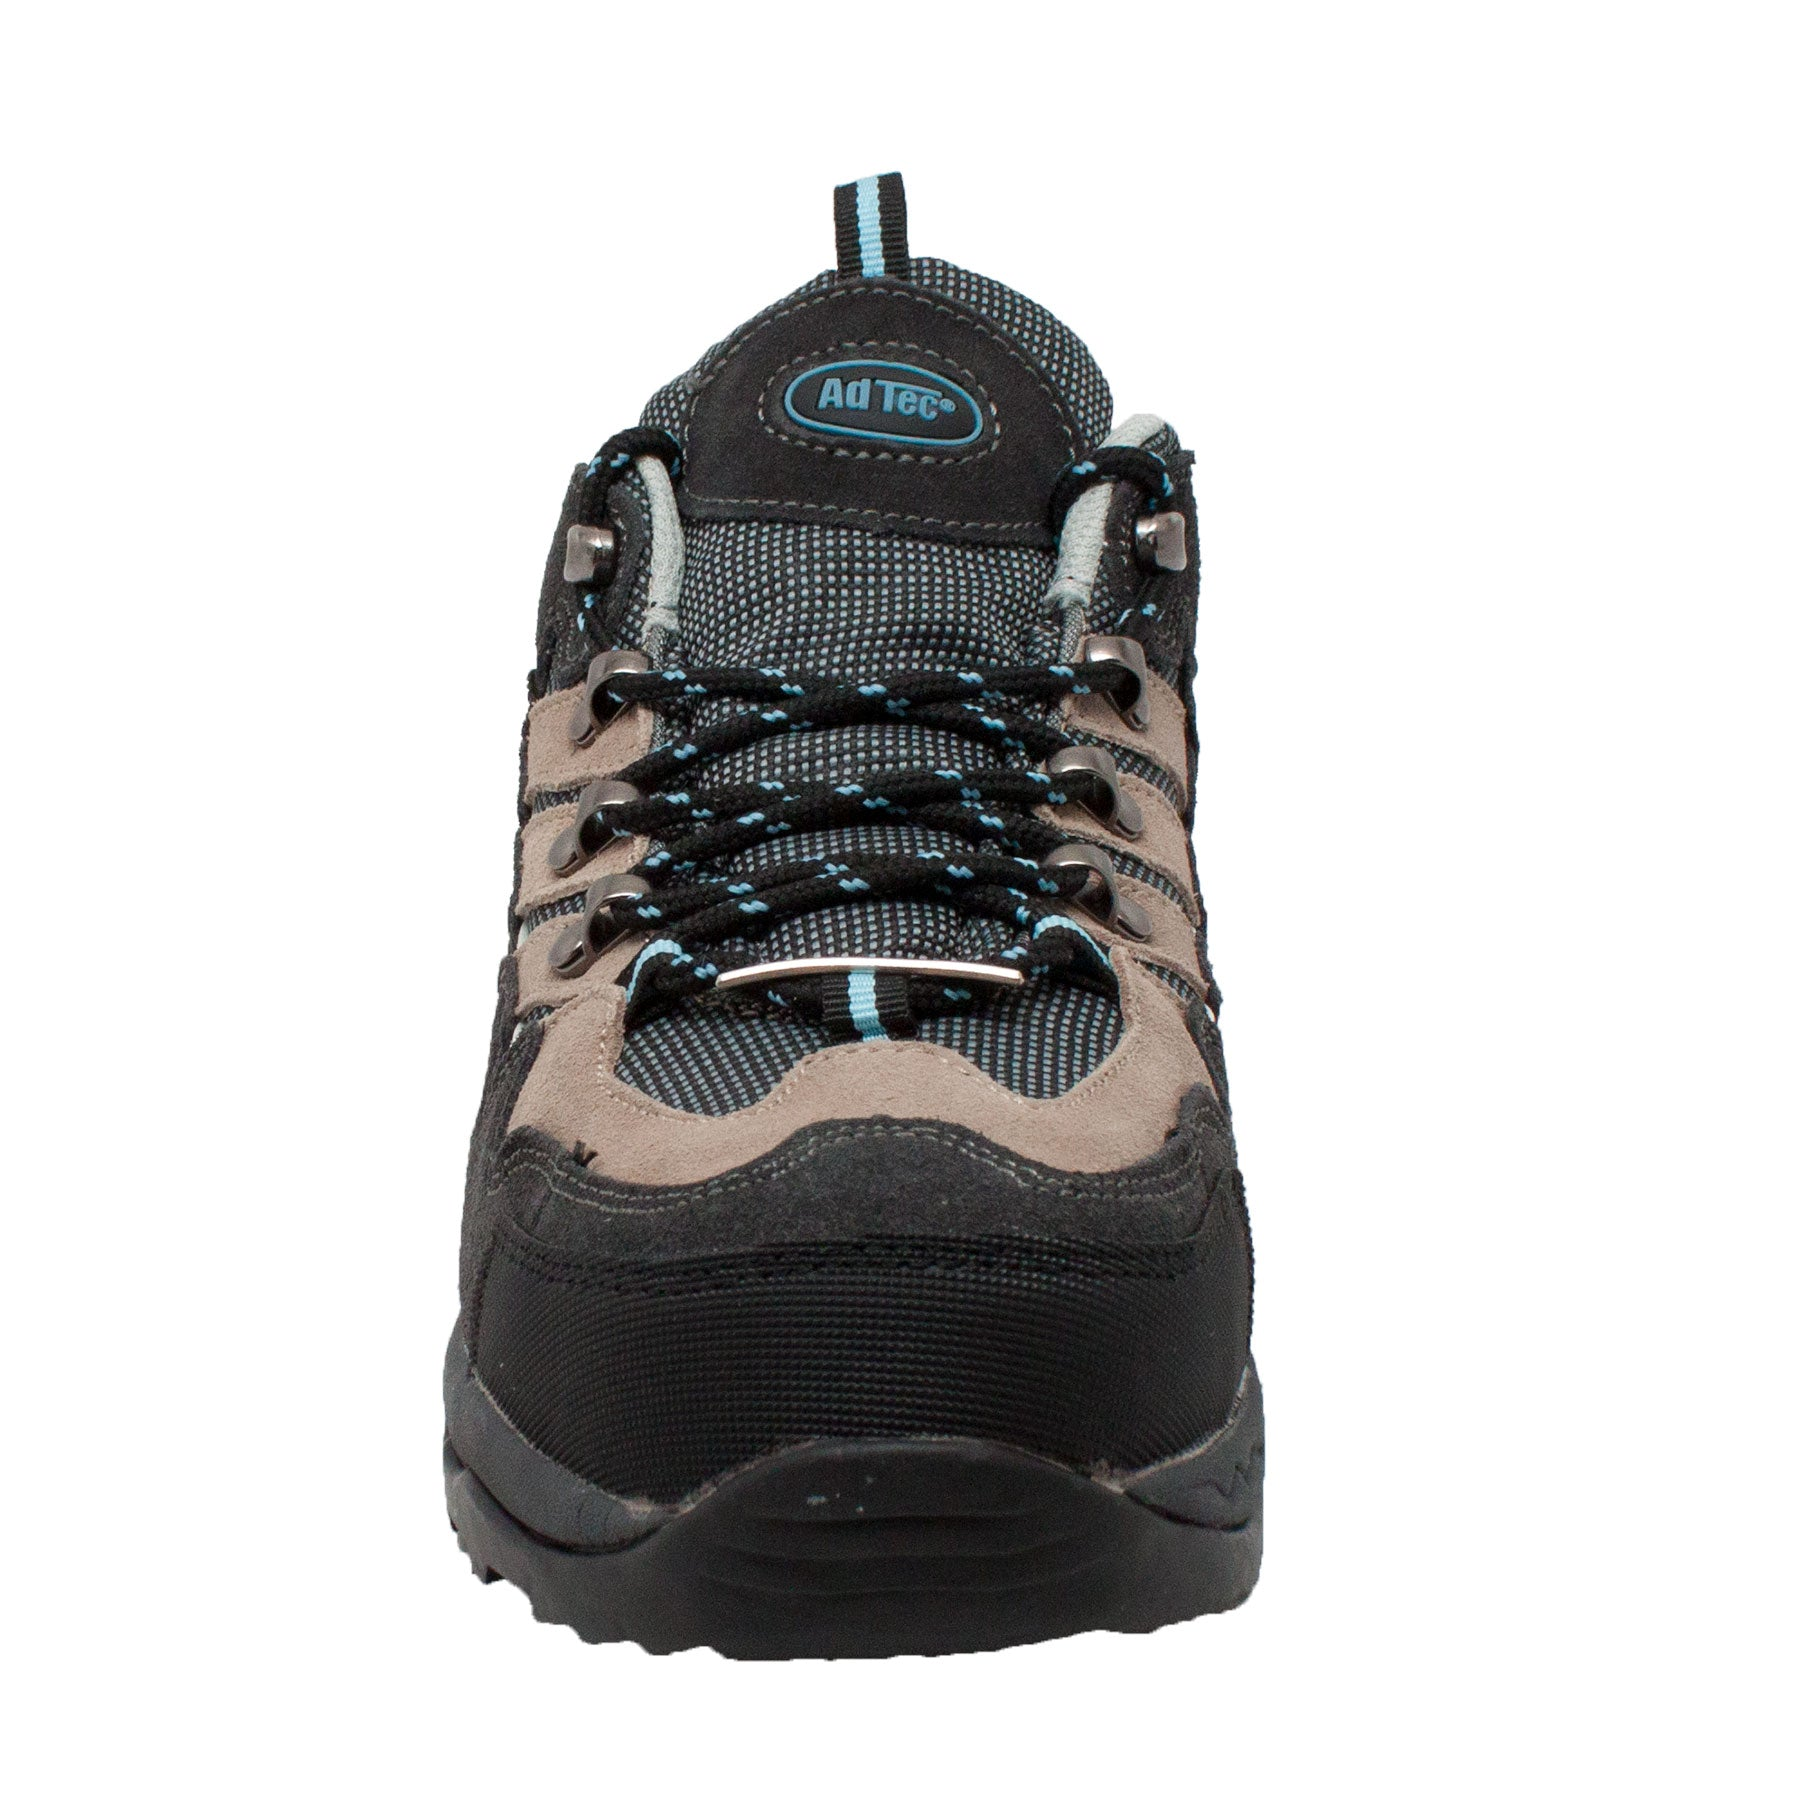 Women's Leather Low Cut Steel Toe Hiker Black - 8418 - Shop Genuine Leather men & women's boots online | AdTecFootWear